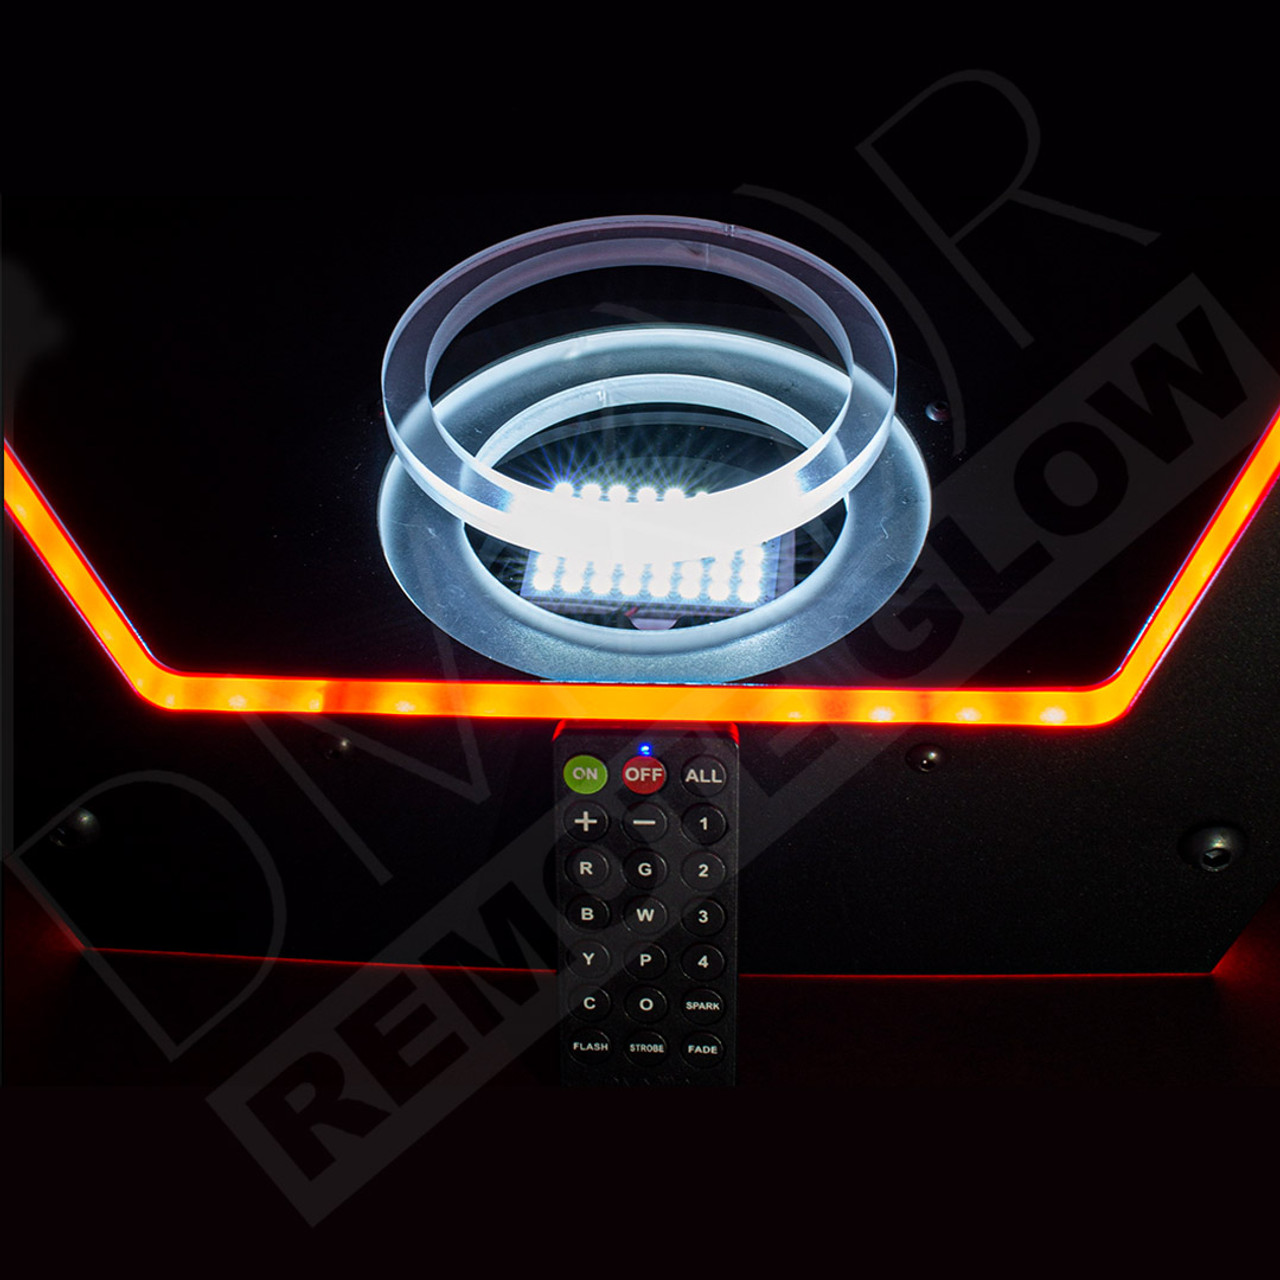 Universal, Ring, System, Nightclub, Bar, Lounge, Secure, Bottle, Caddy, remote, Controlled, DMXR, Advanced, Coded, technology